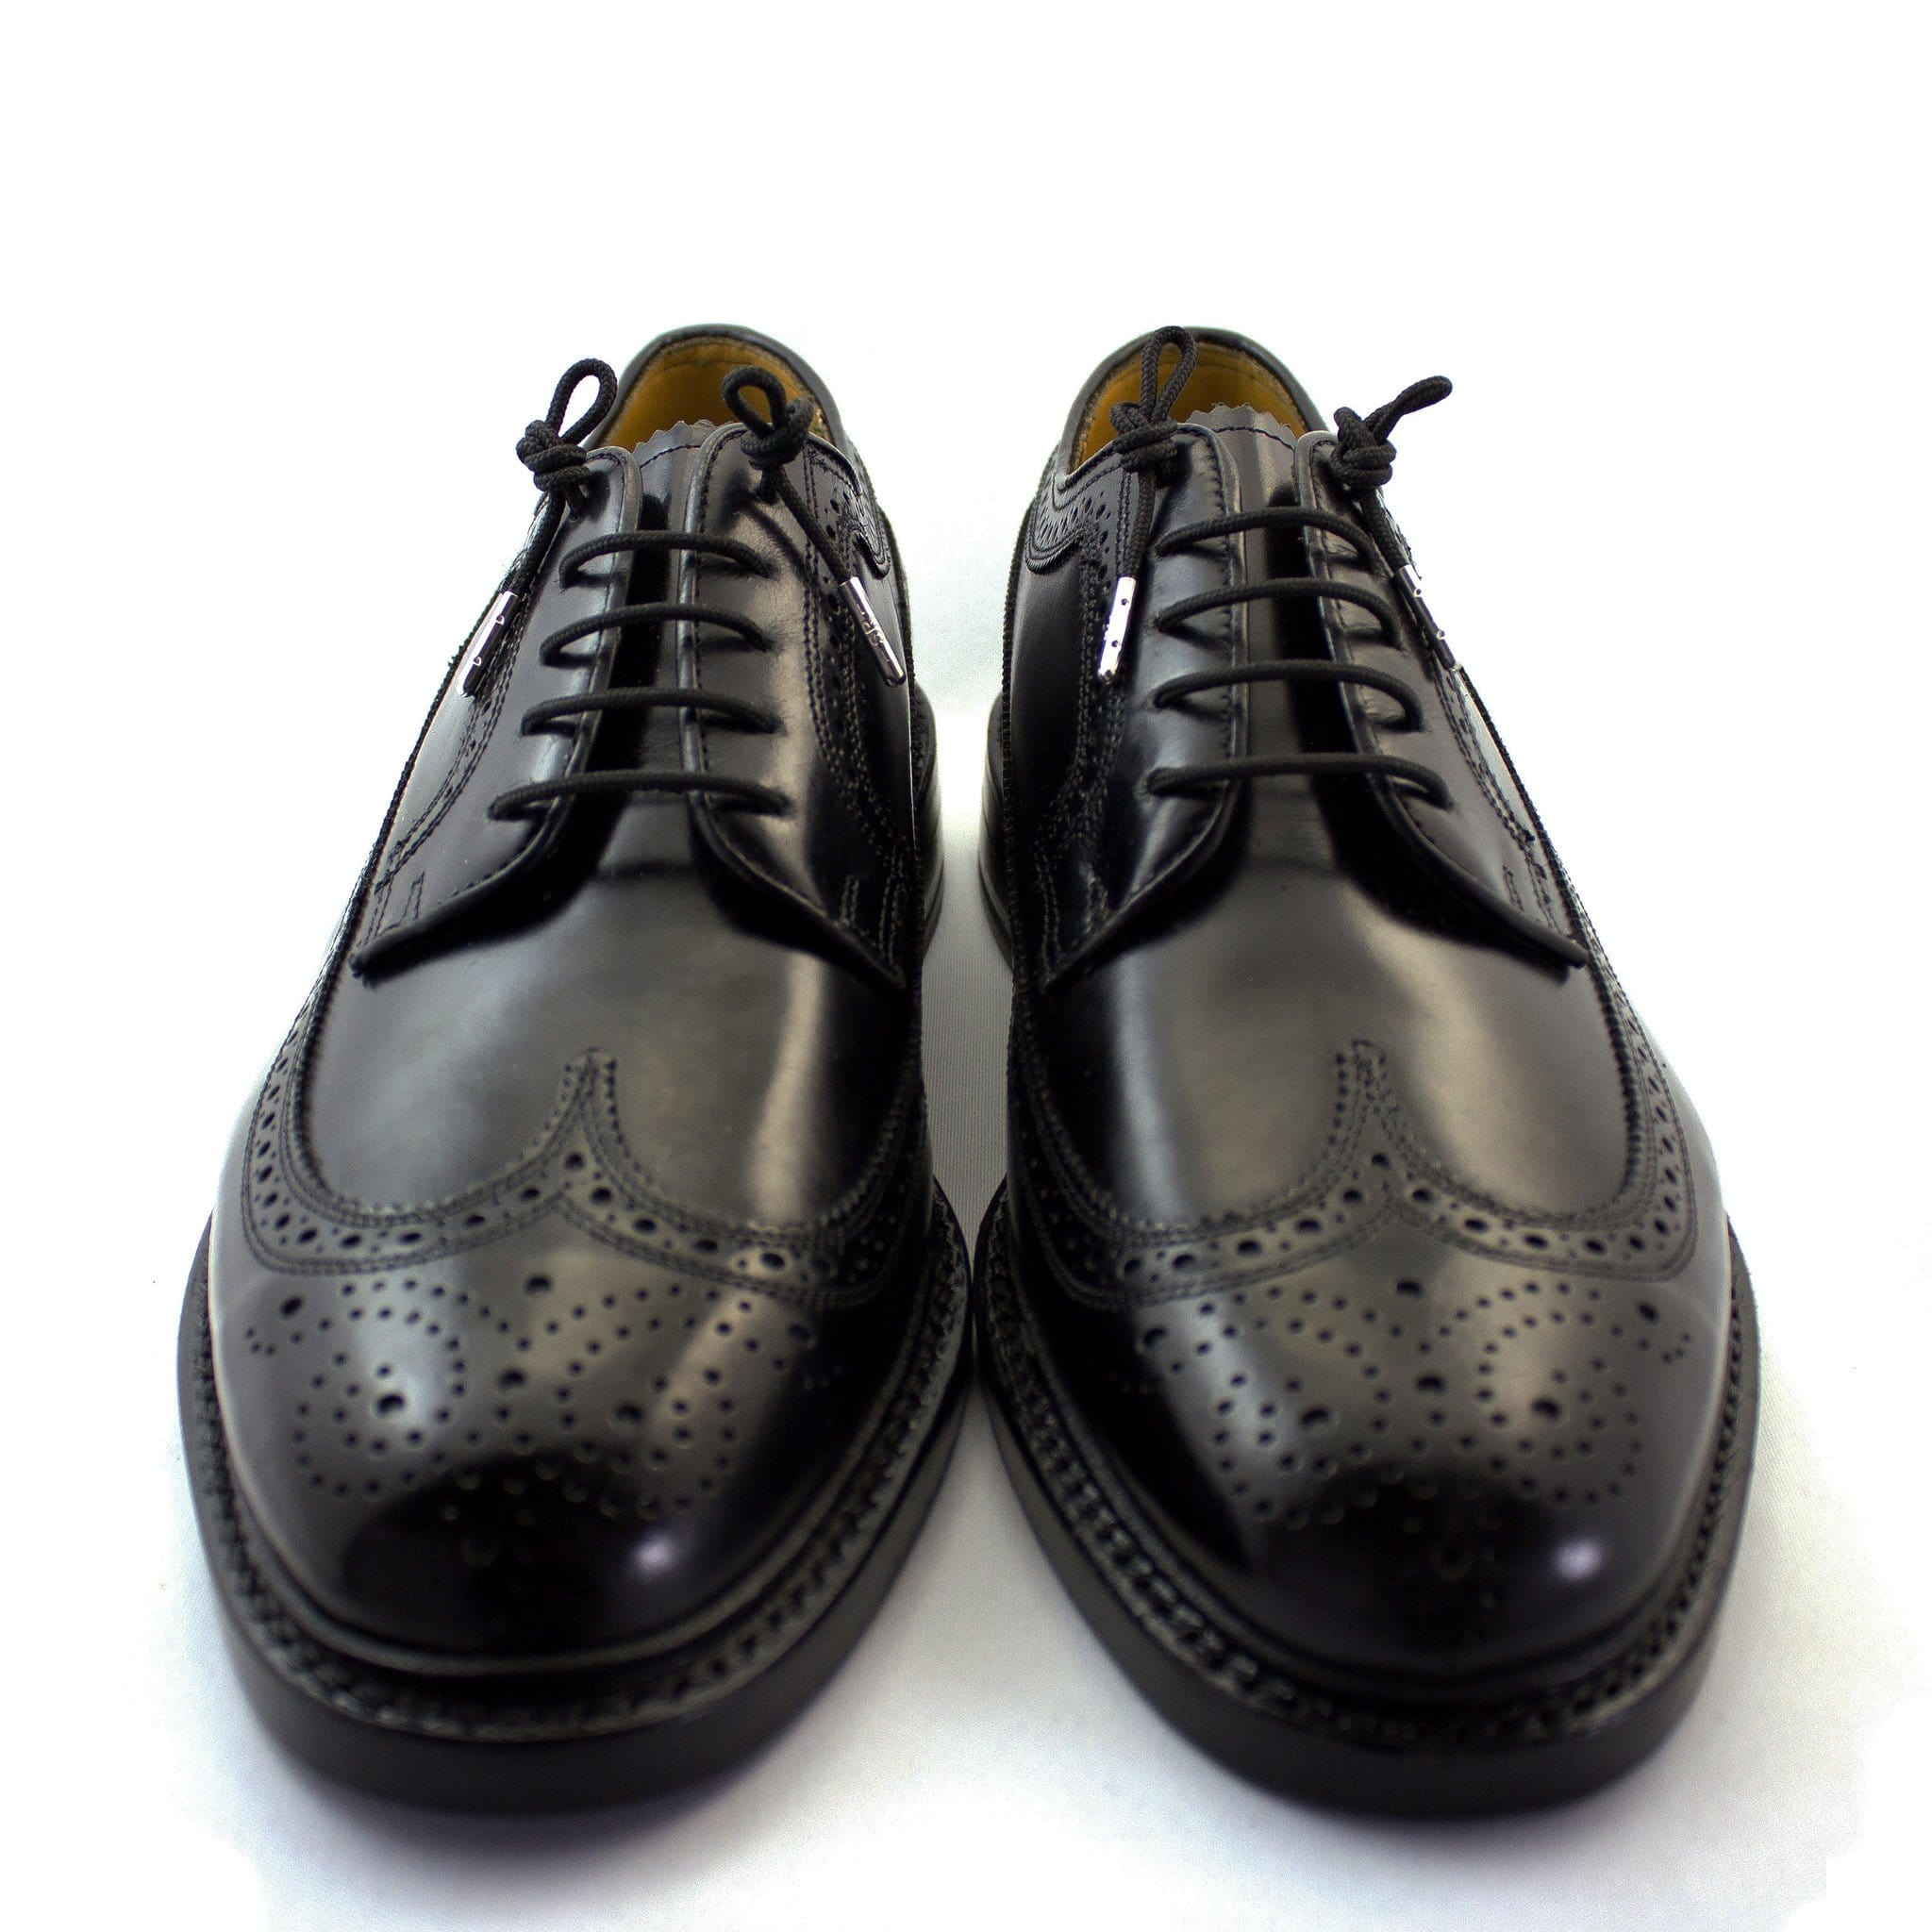 "Black laces for dress shoes, Length: 27""/69cm-Stolen Riches"